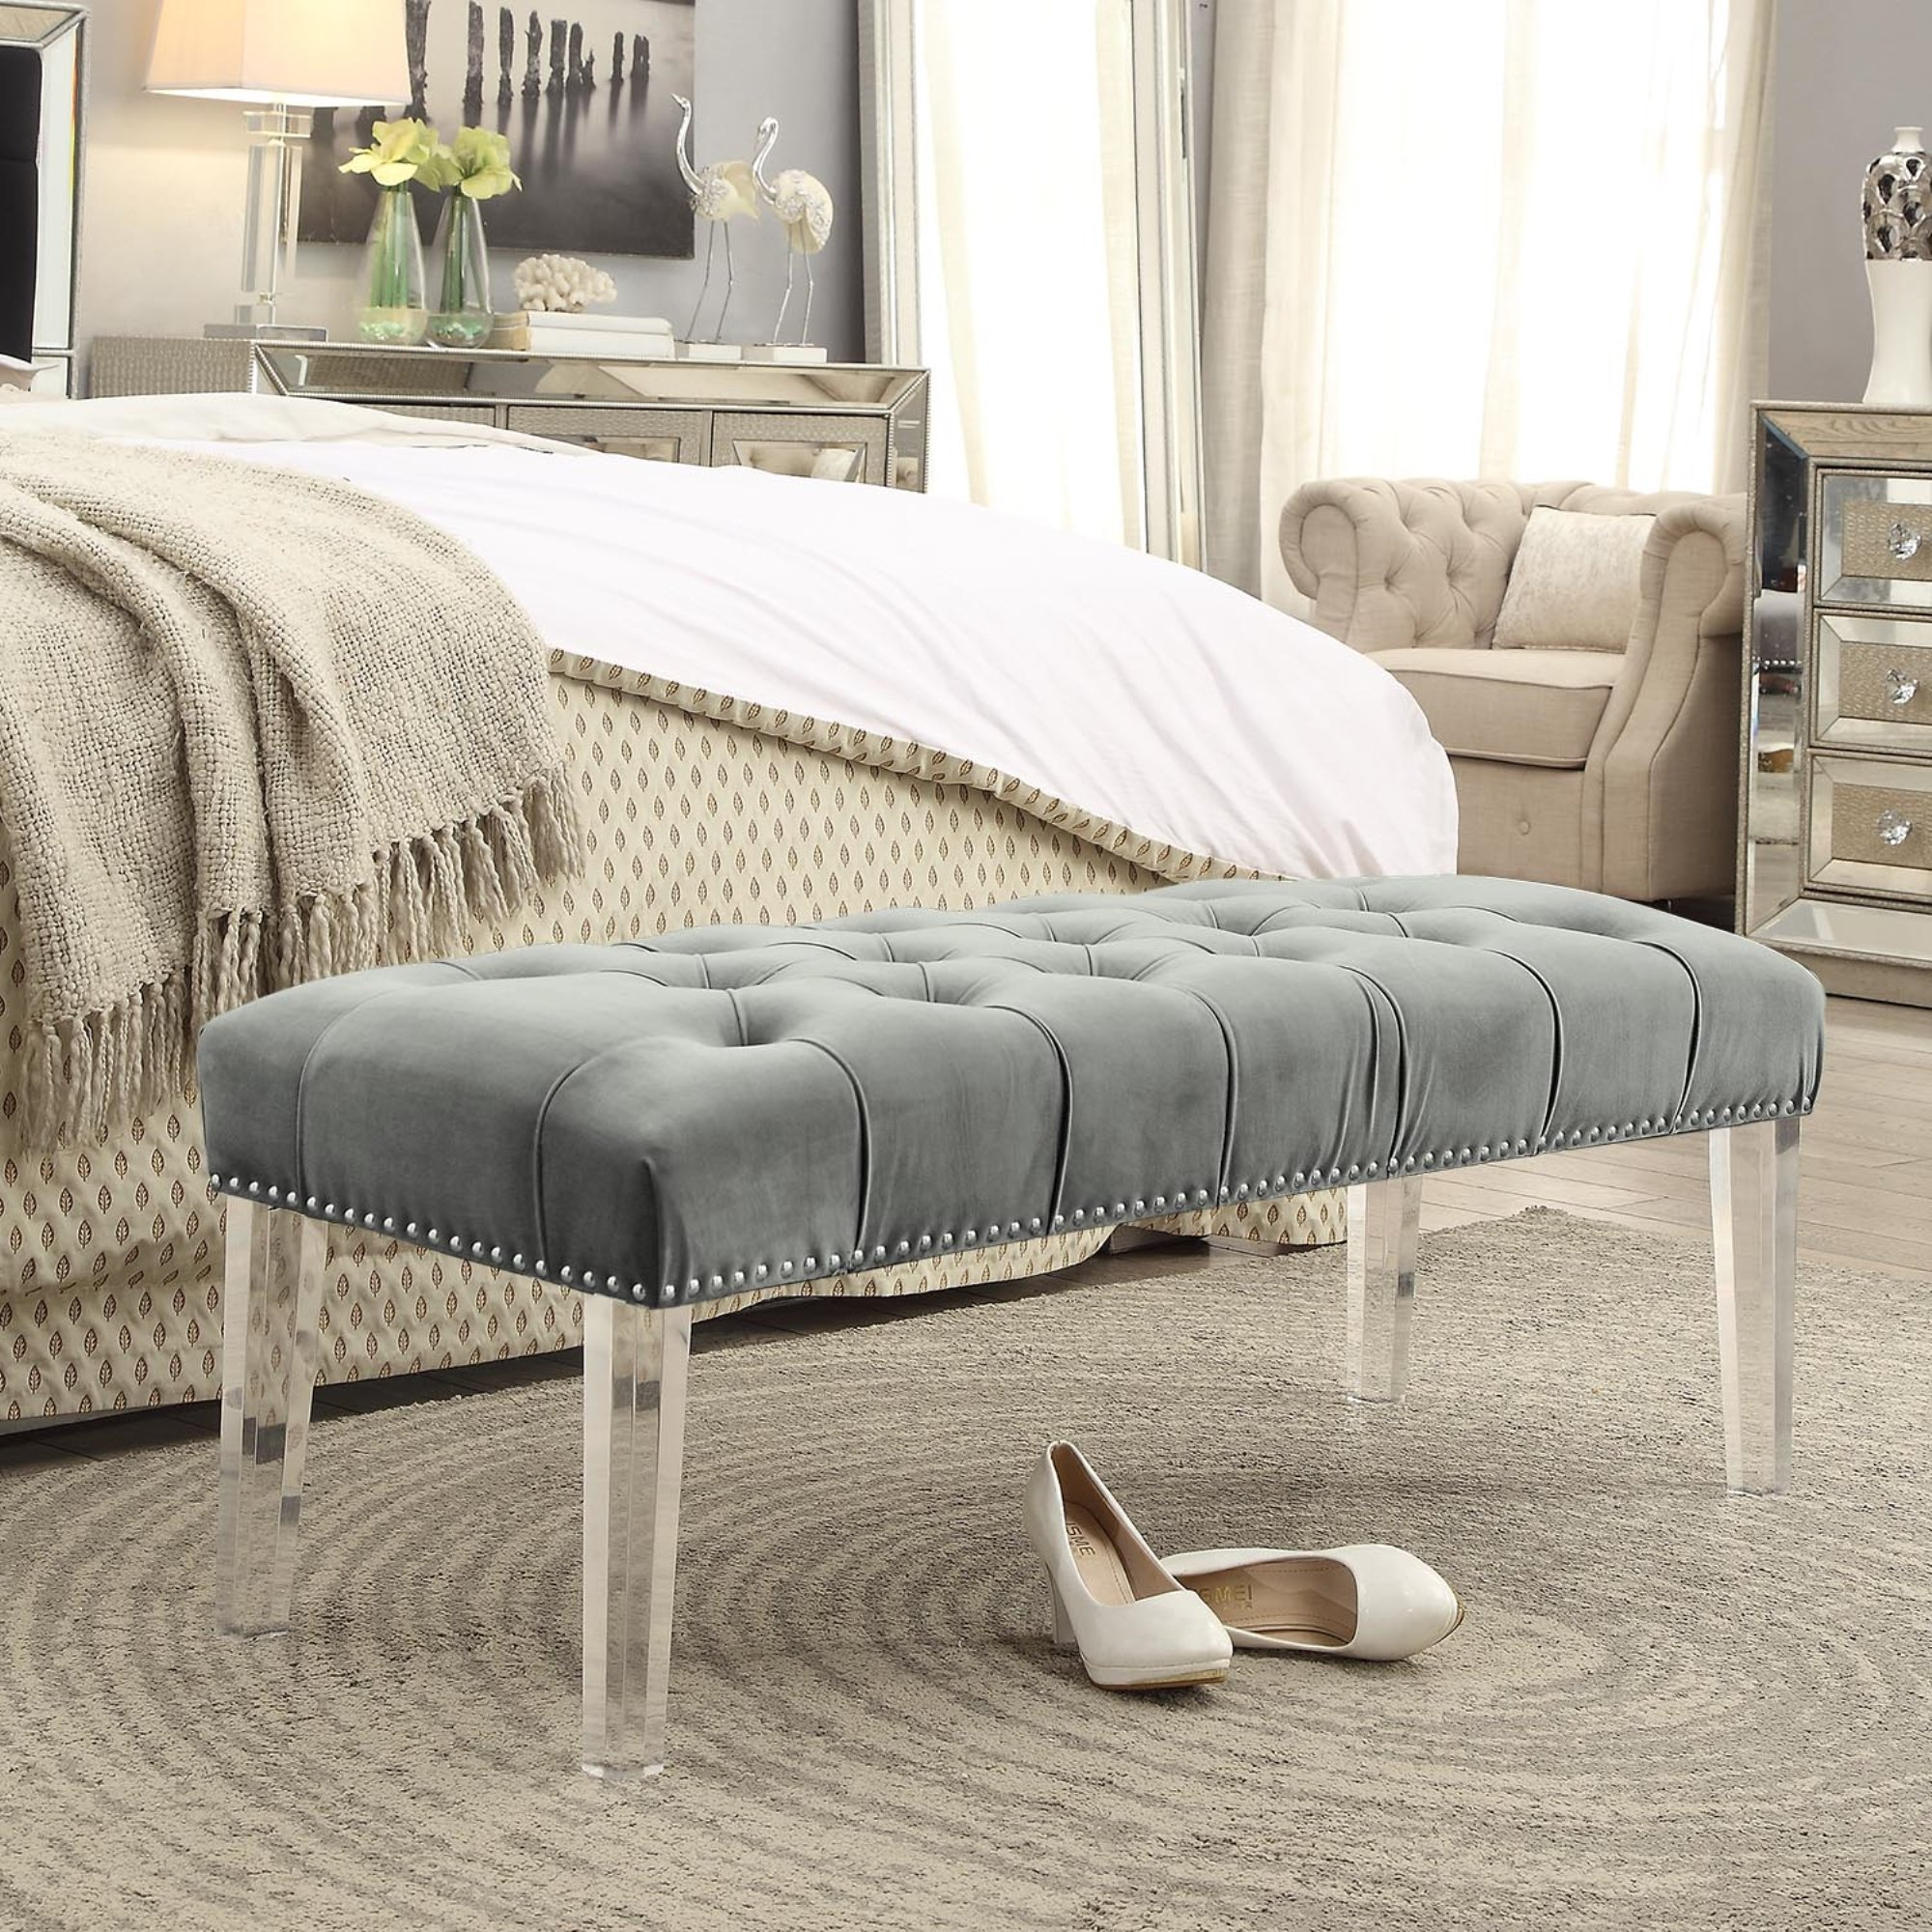 Inspired Home Victoria Velvet Button Tufted with Silver Nailhead Trim Clear Acrylic Legs Ottoman Bench, Grey